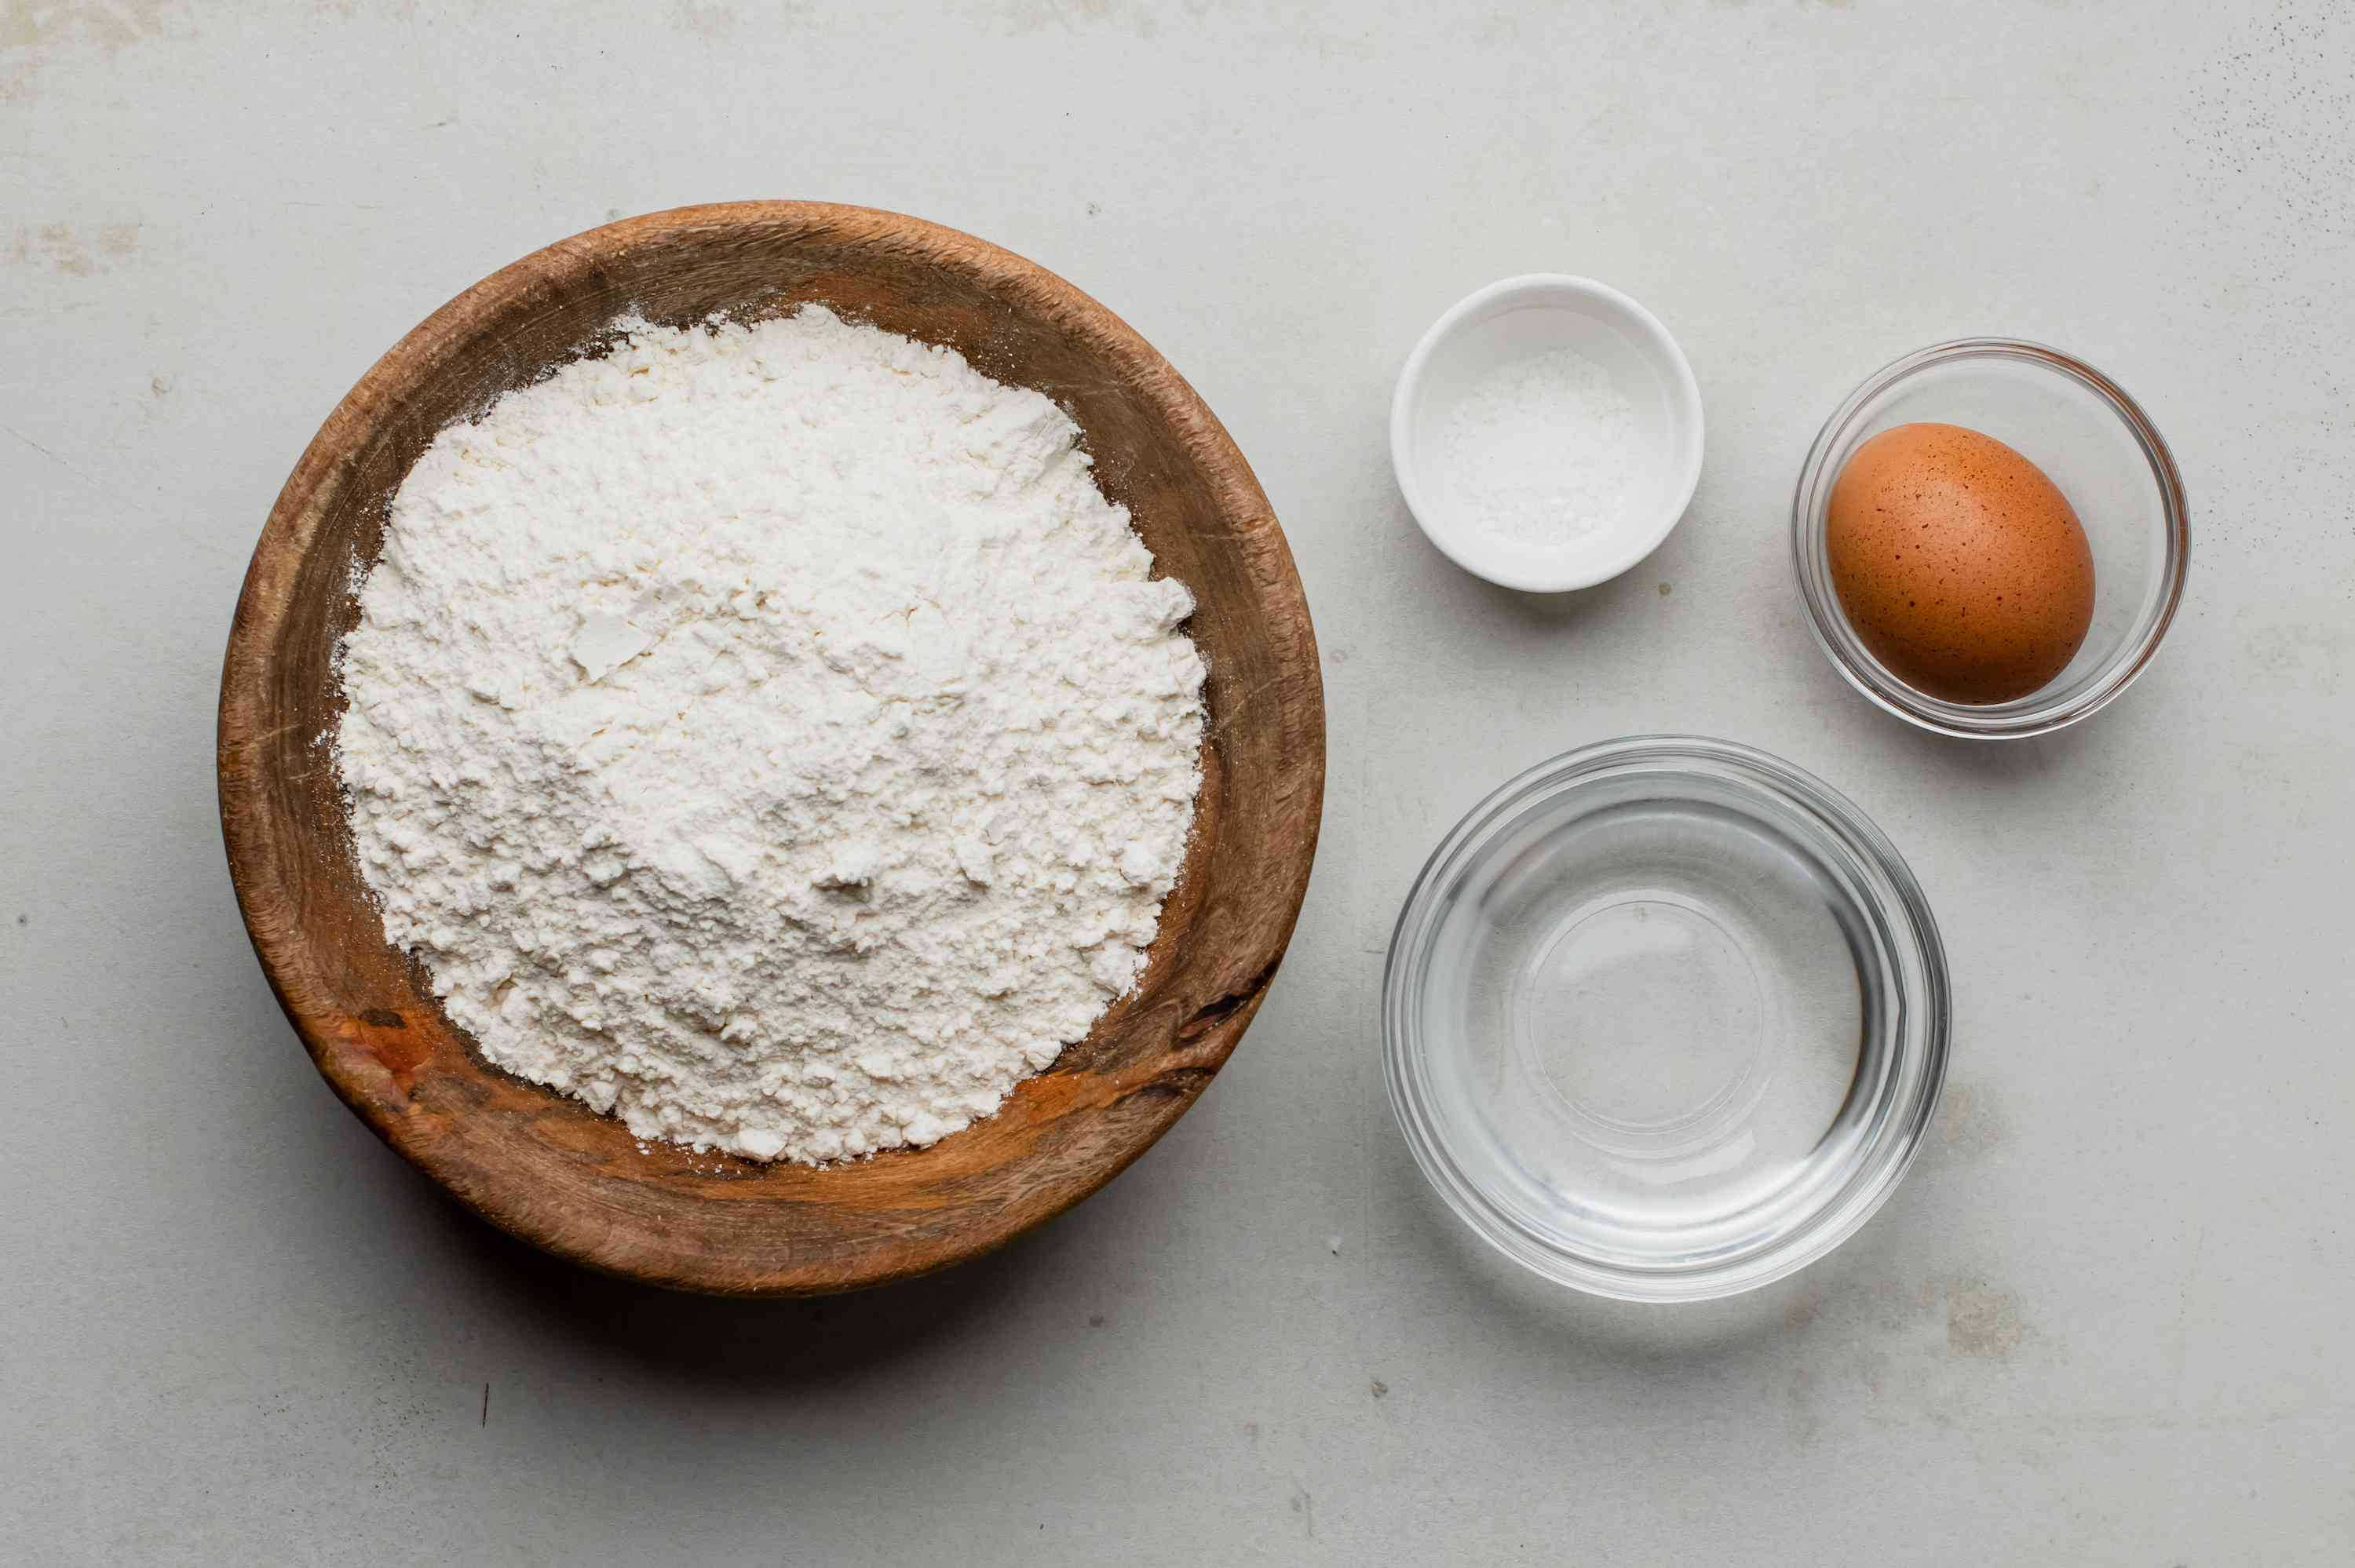 Ingredients for dough